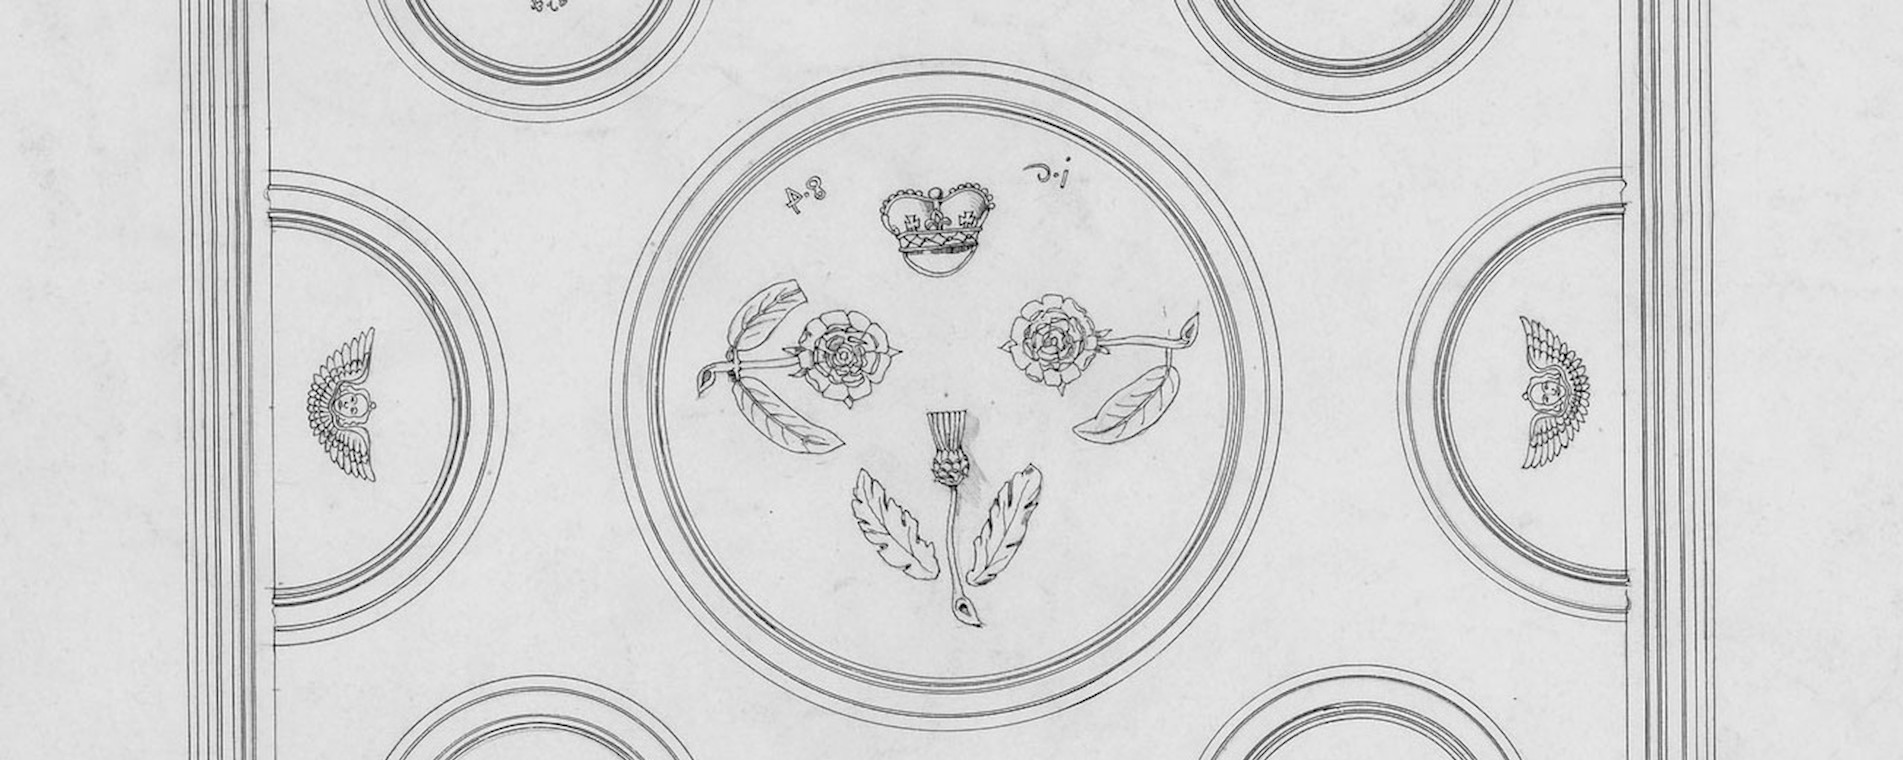 Norie Room Ceiling Drawing 1896 ©HES